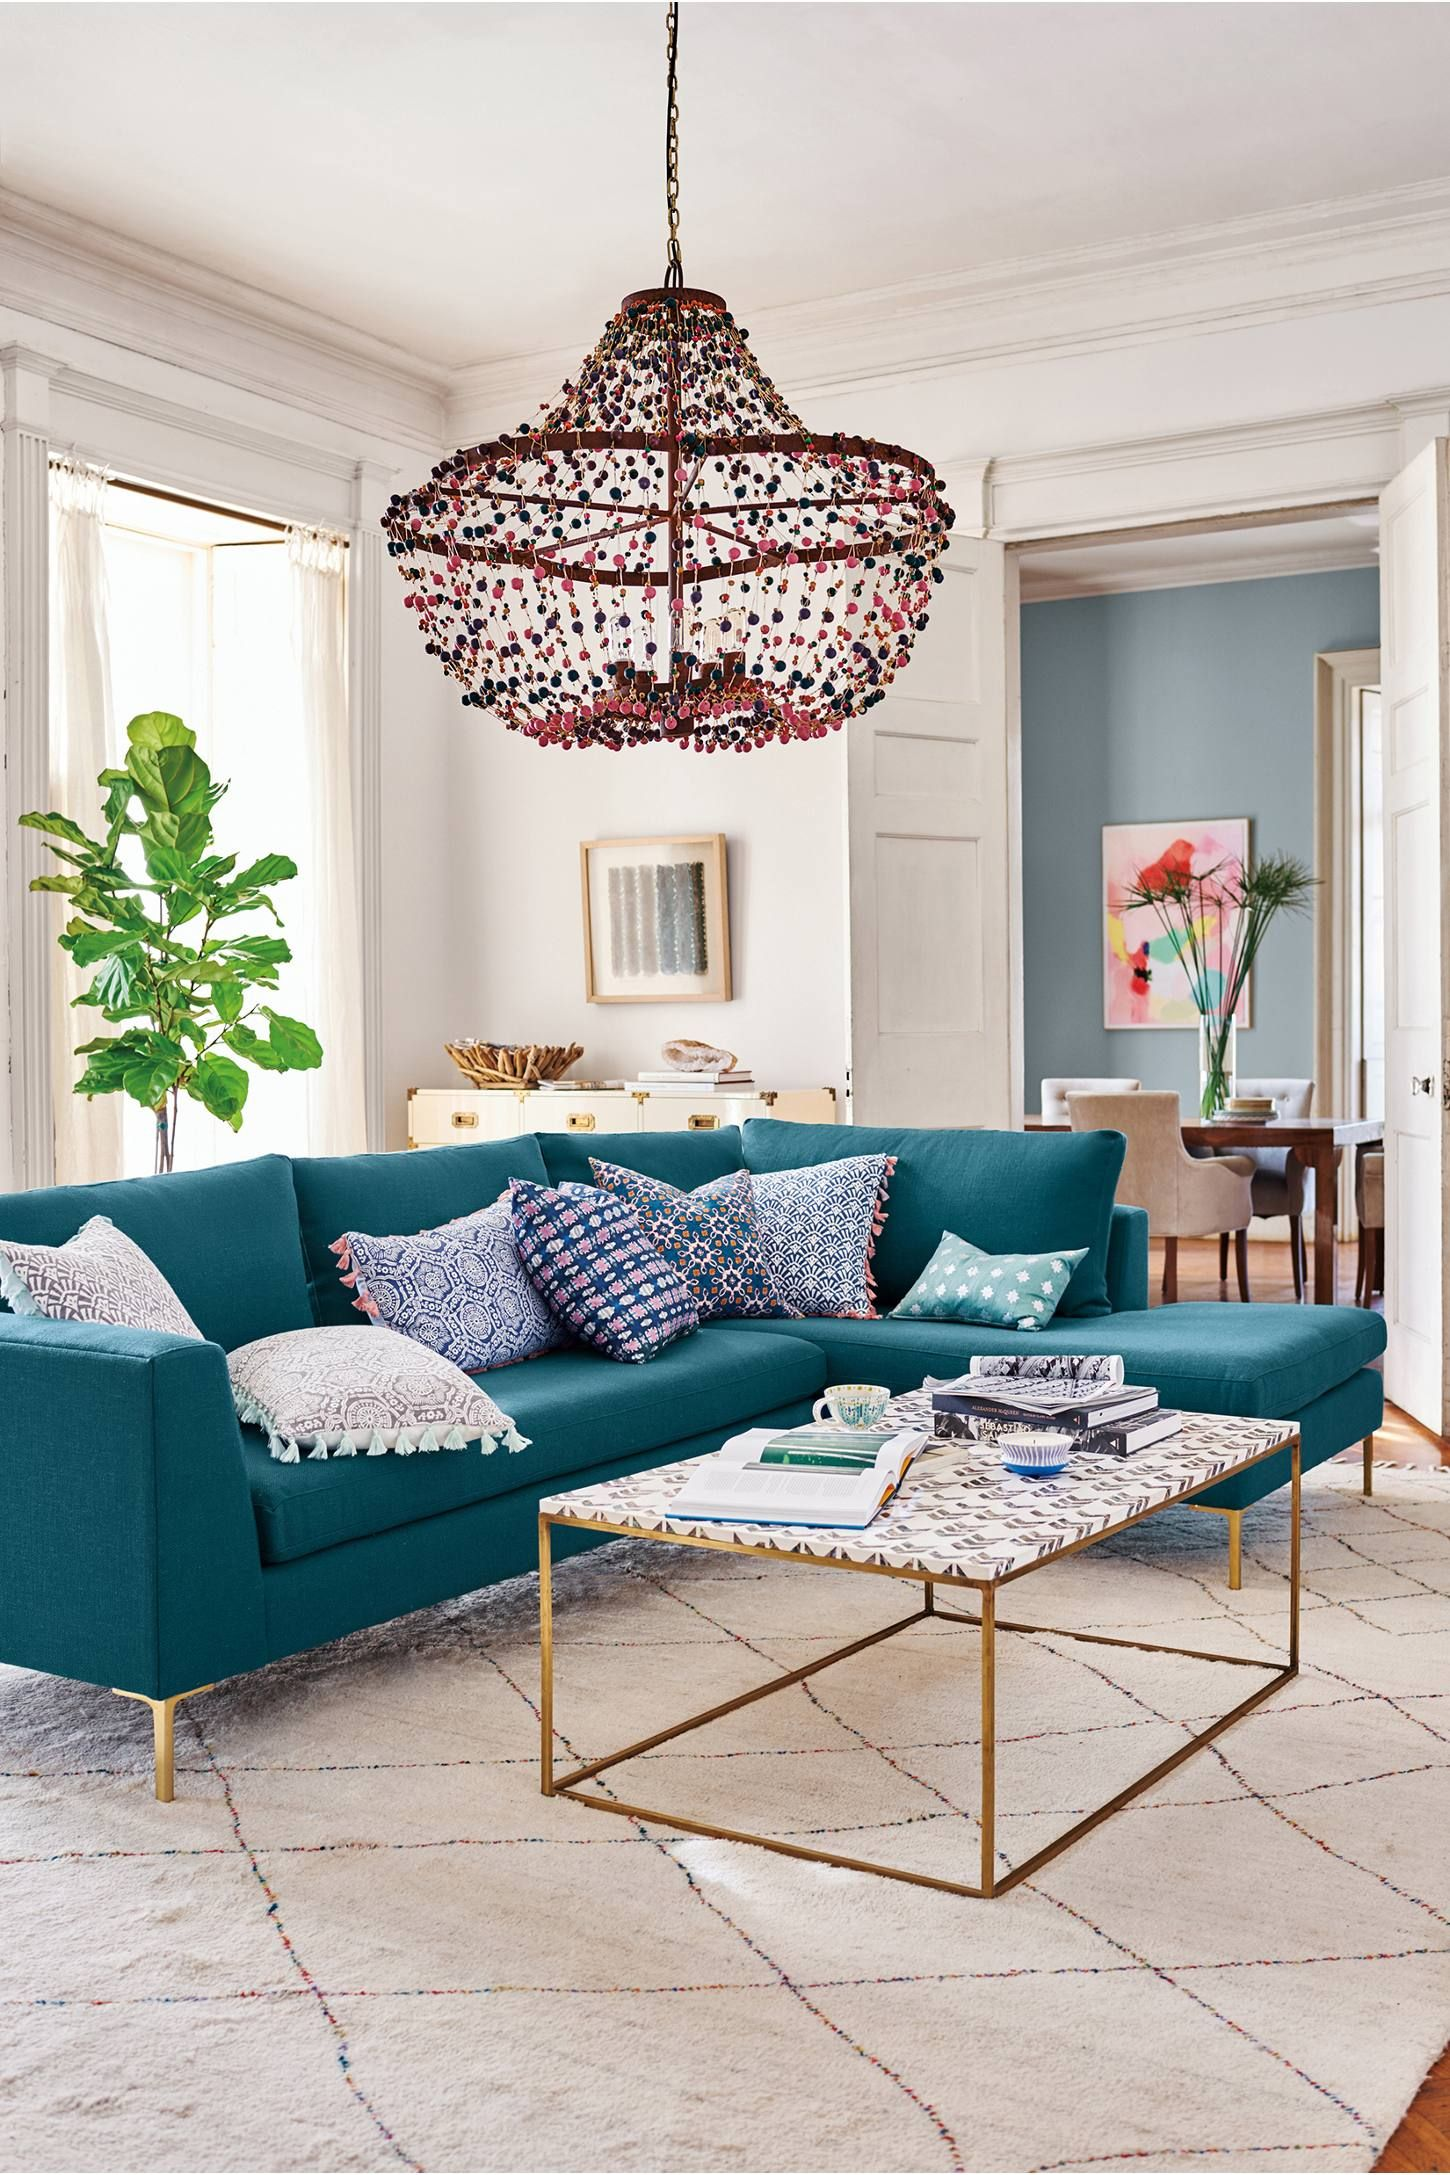 Abalorio Chandelier Teal Sofa Living Room Teal Living Rooms Living Room Turquoise